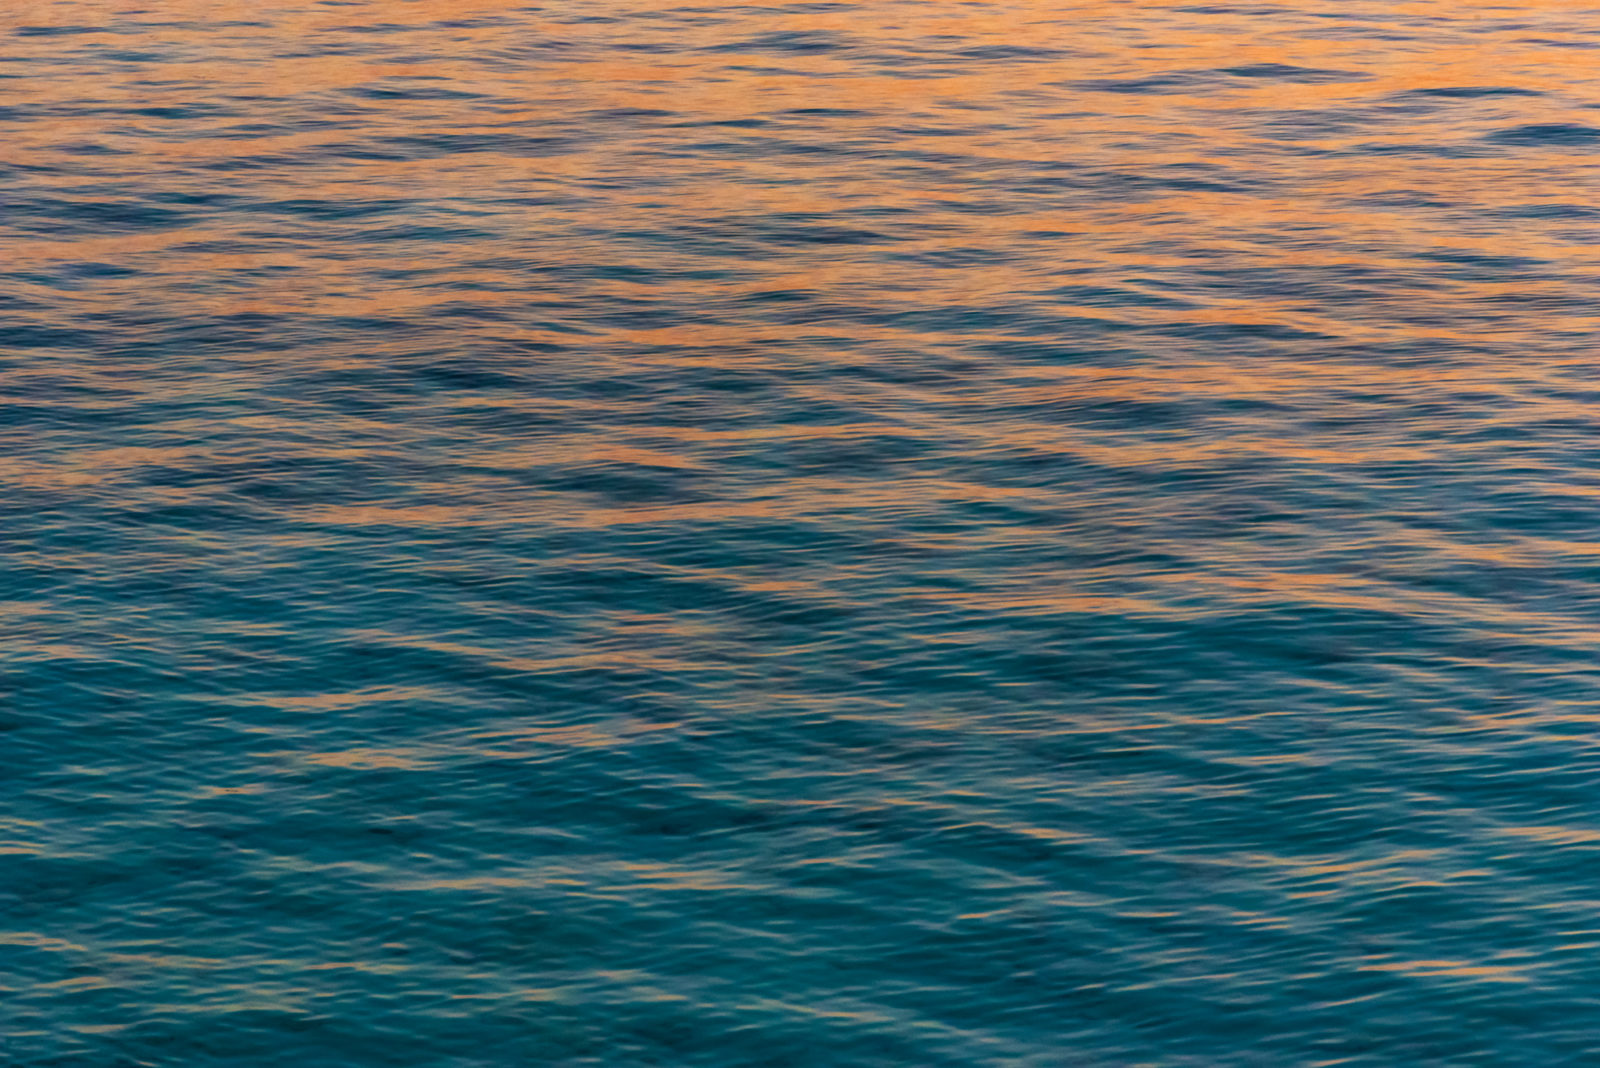 Sunset on the waves, The Maldives